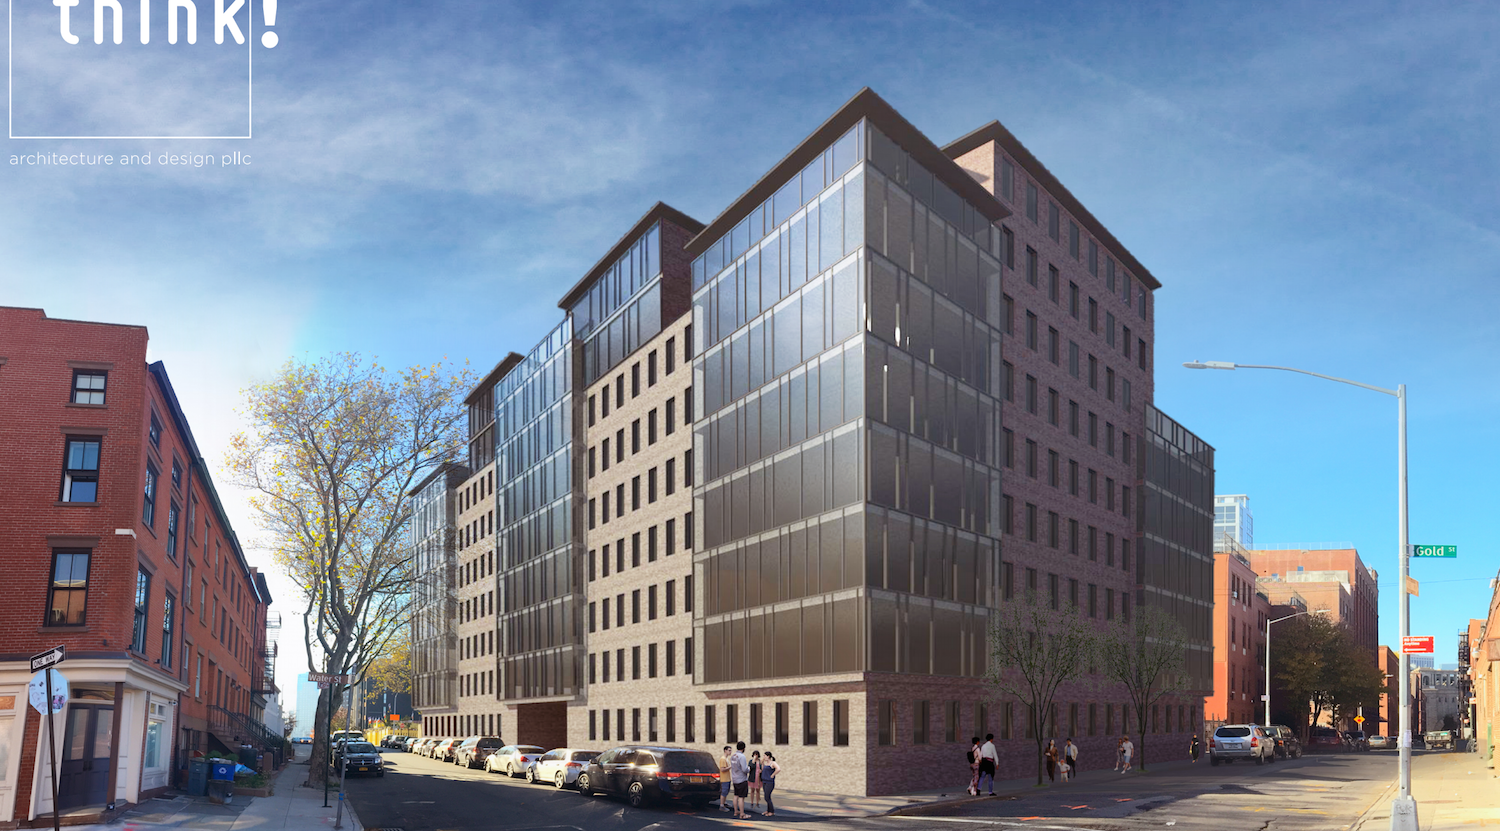 251 Front Street, rendering by Think Architecture and Design